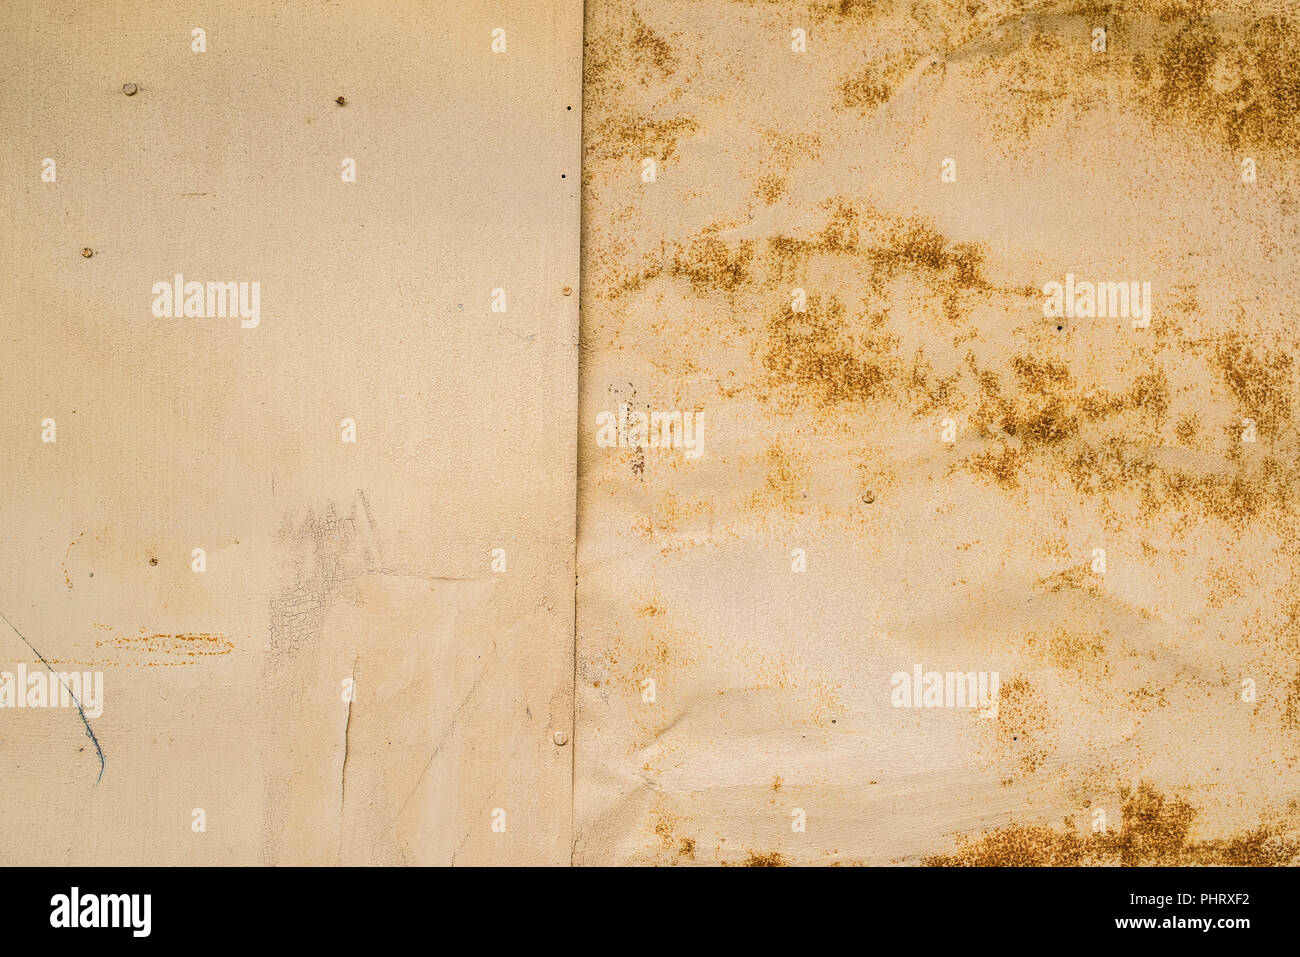 Rusty grunge texture. Nice high resolution background. - Stock Image